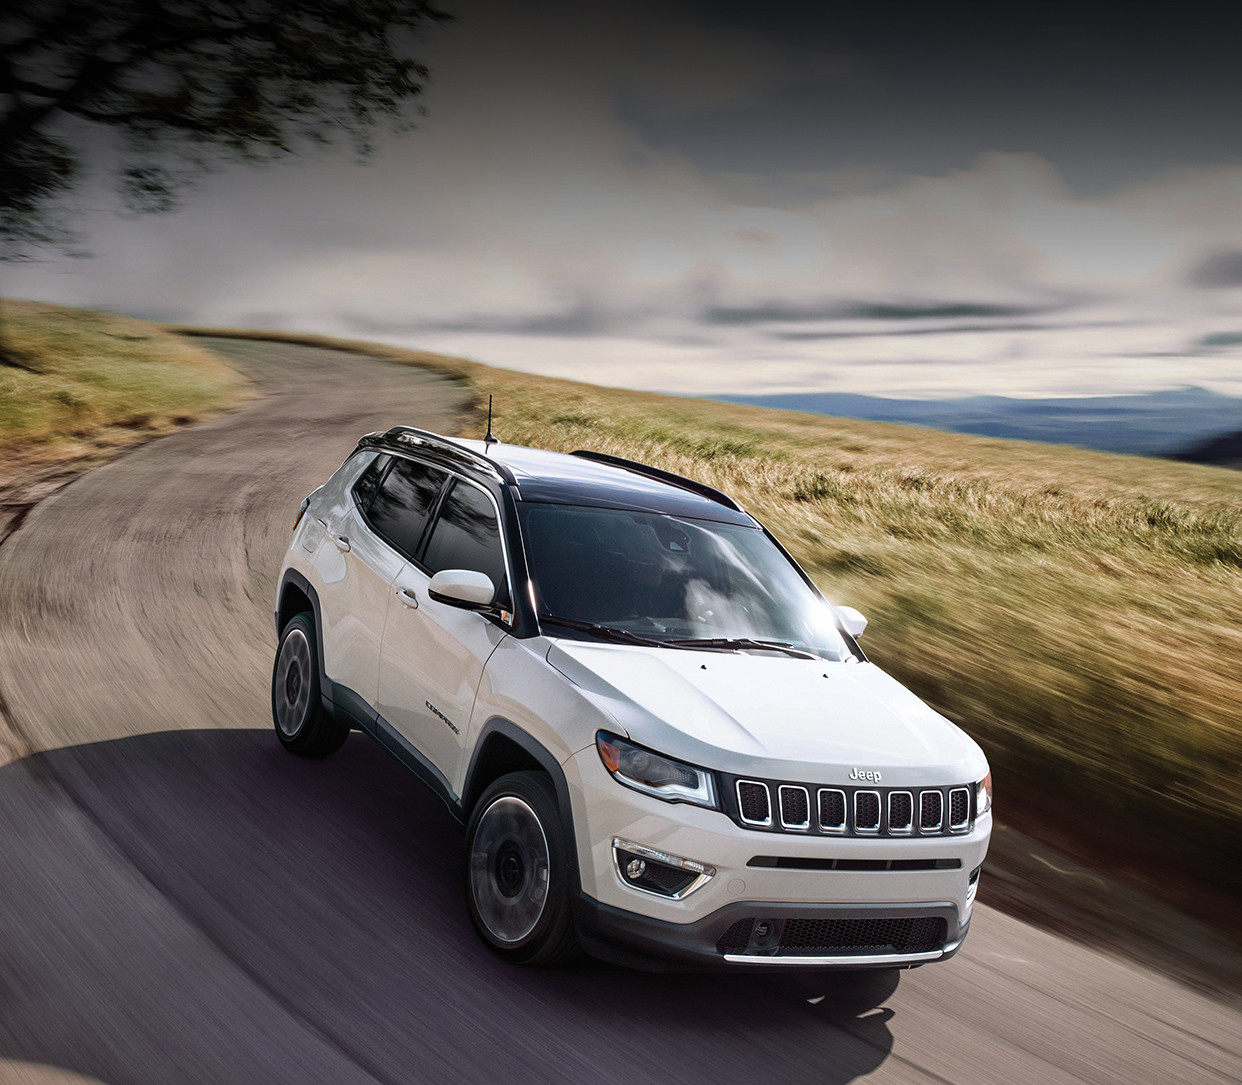 2018 Jeep Compass red exterior